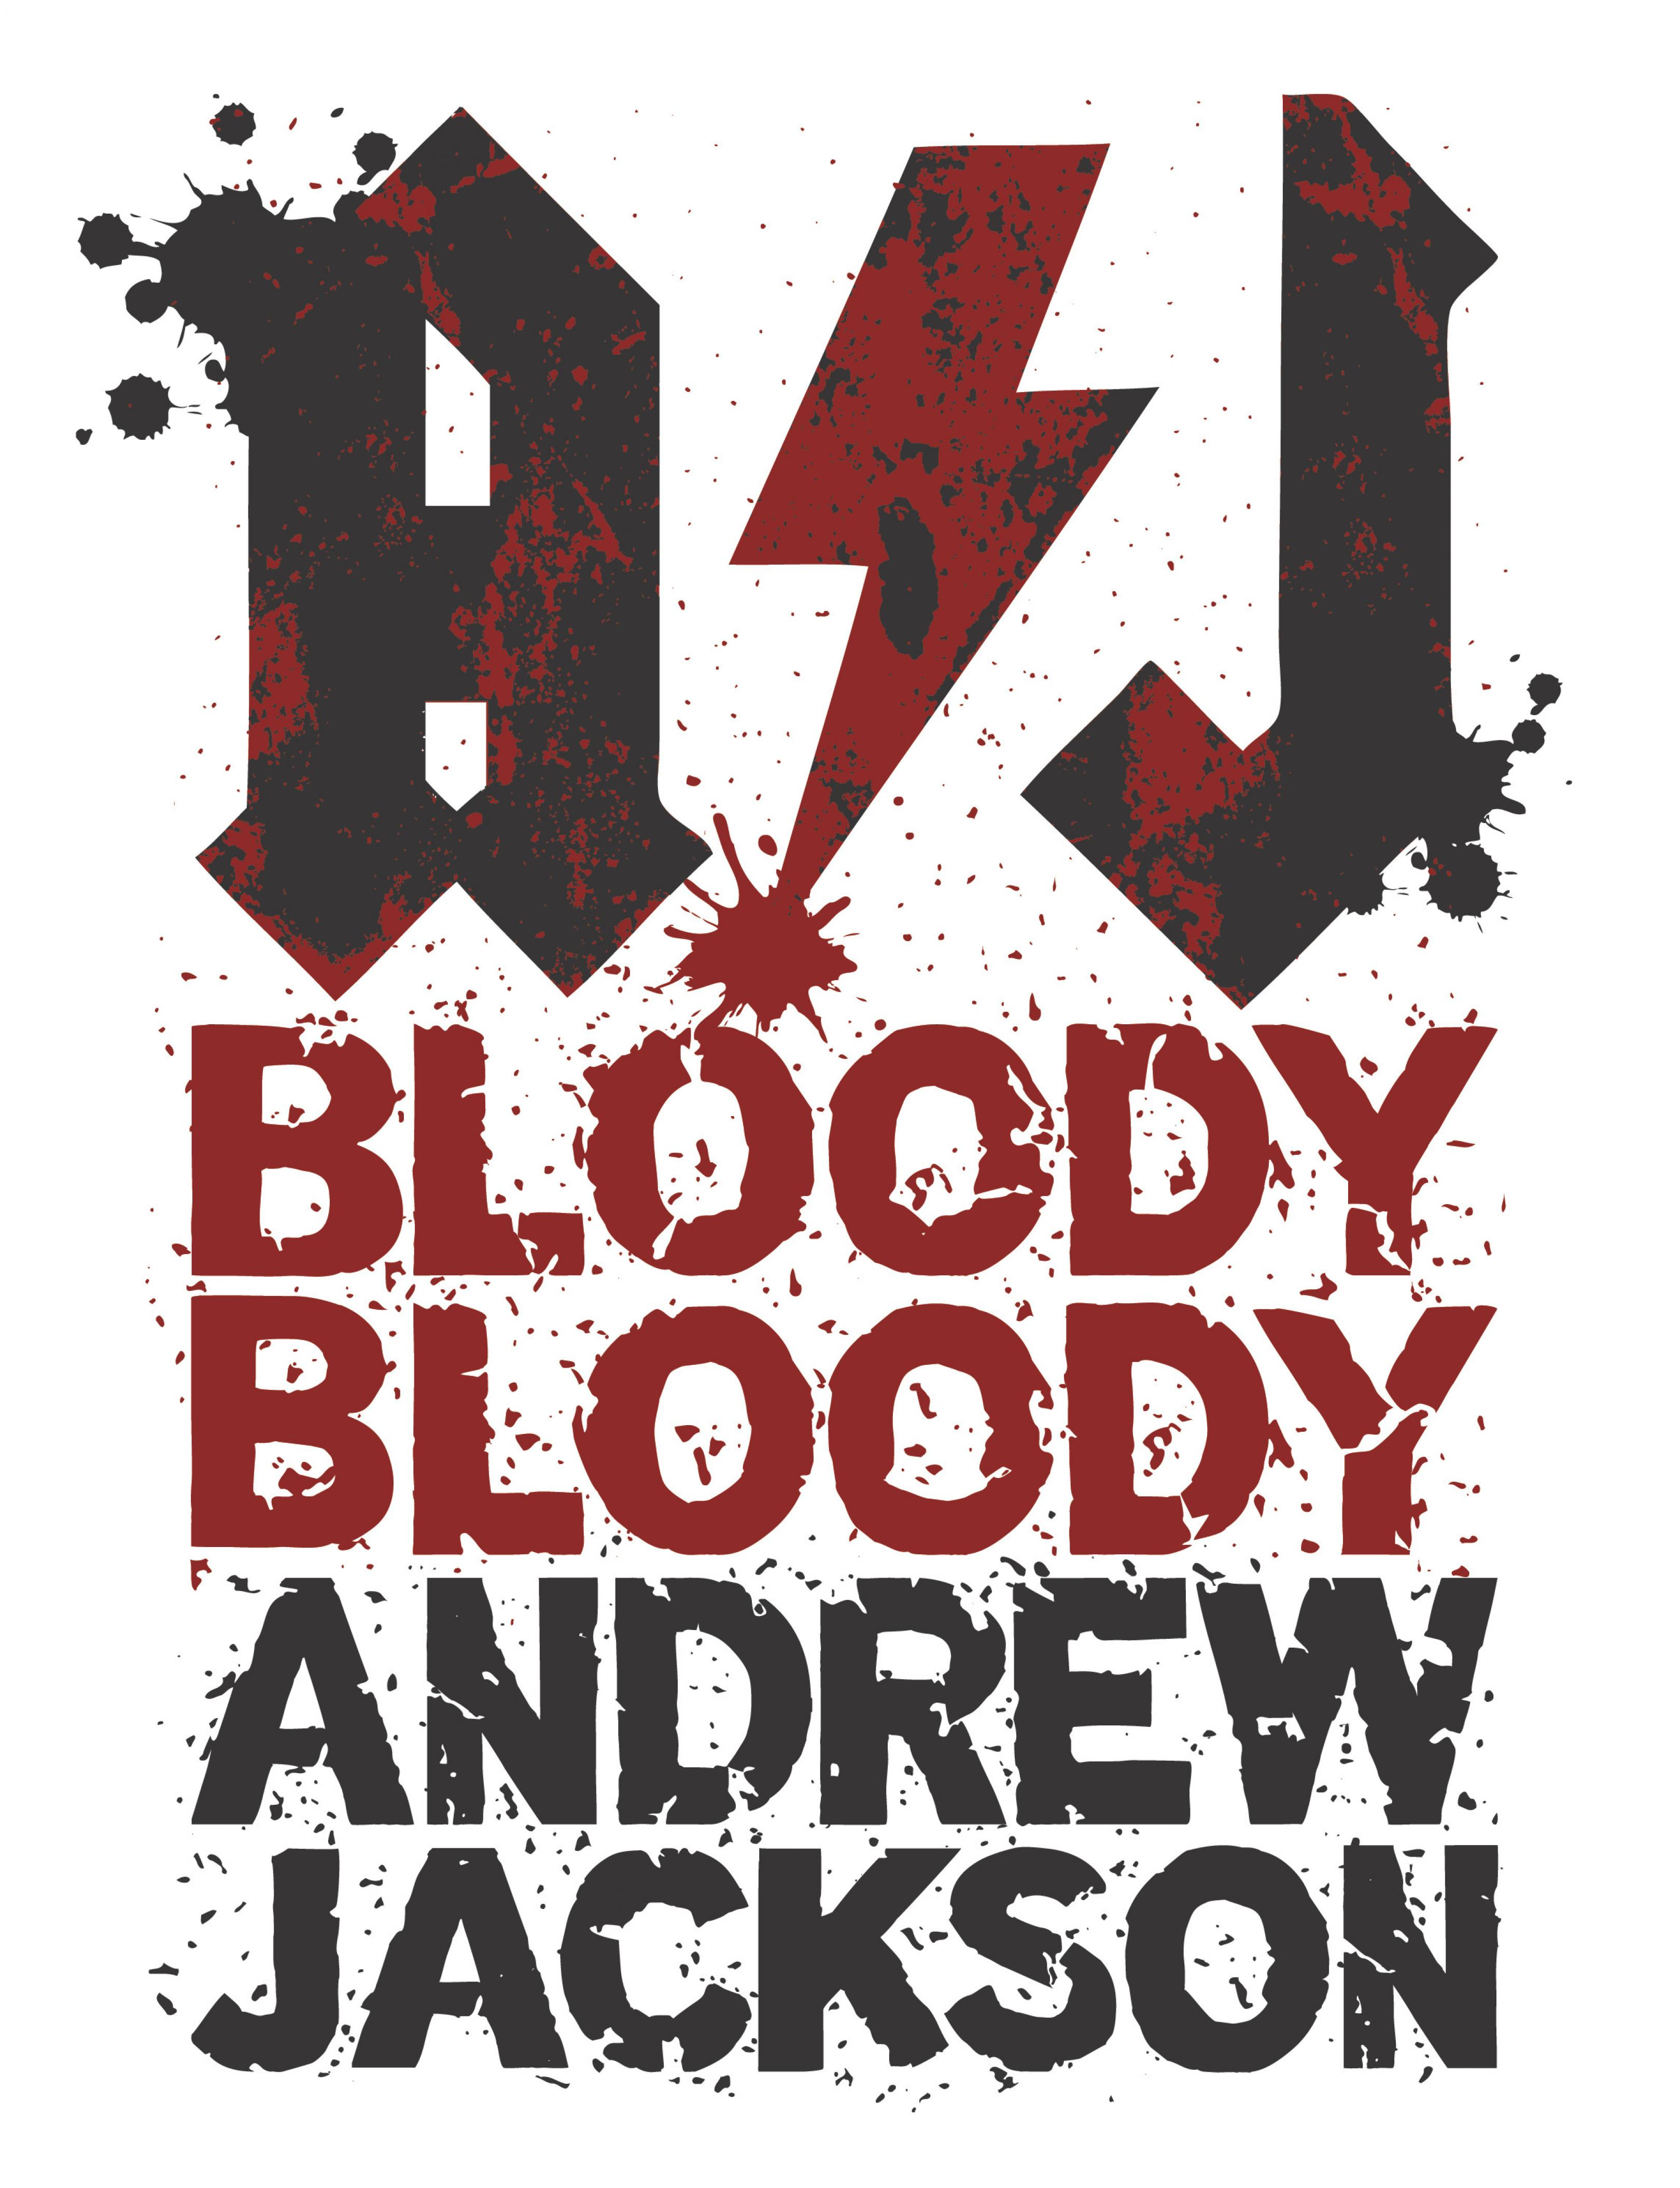 Bloody Bloody Andrew Jackson banner image